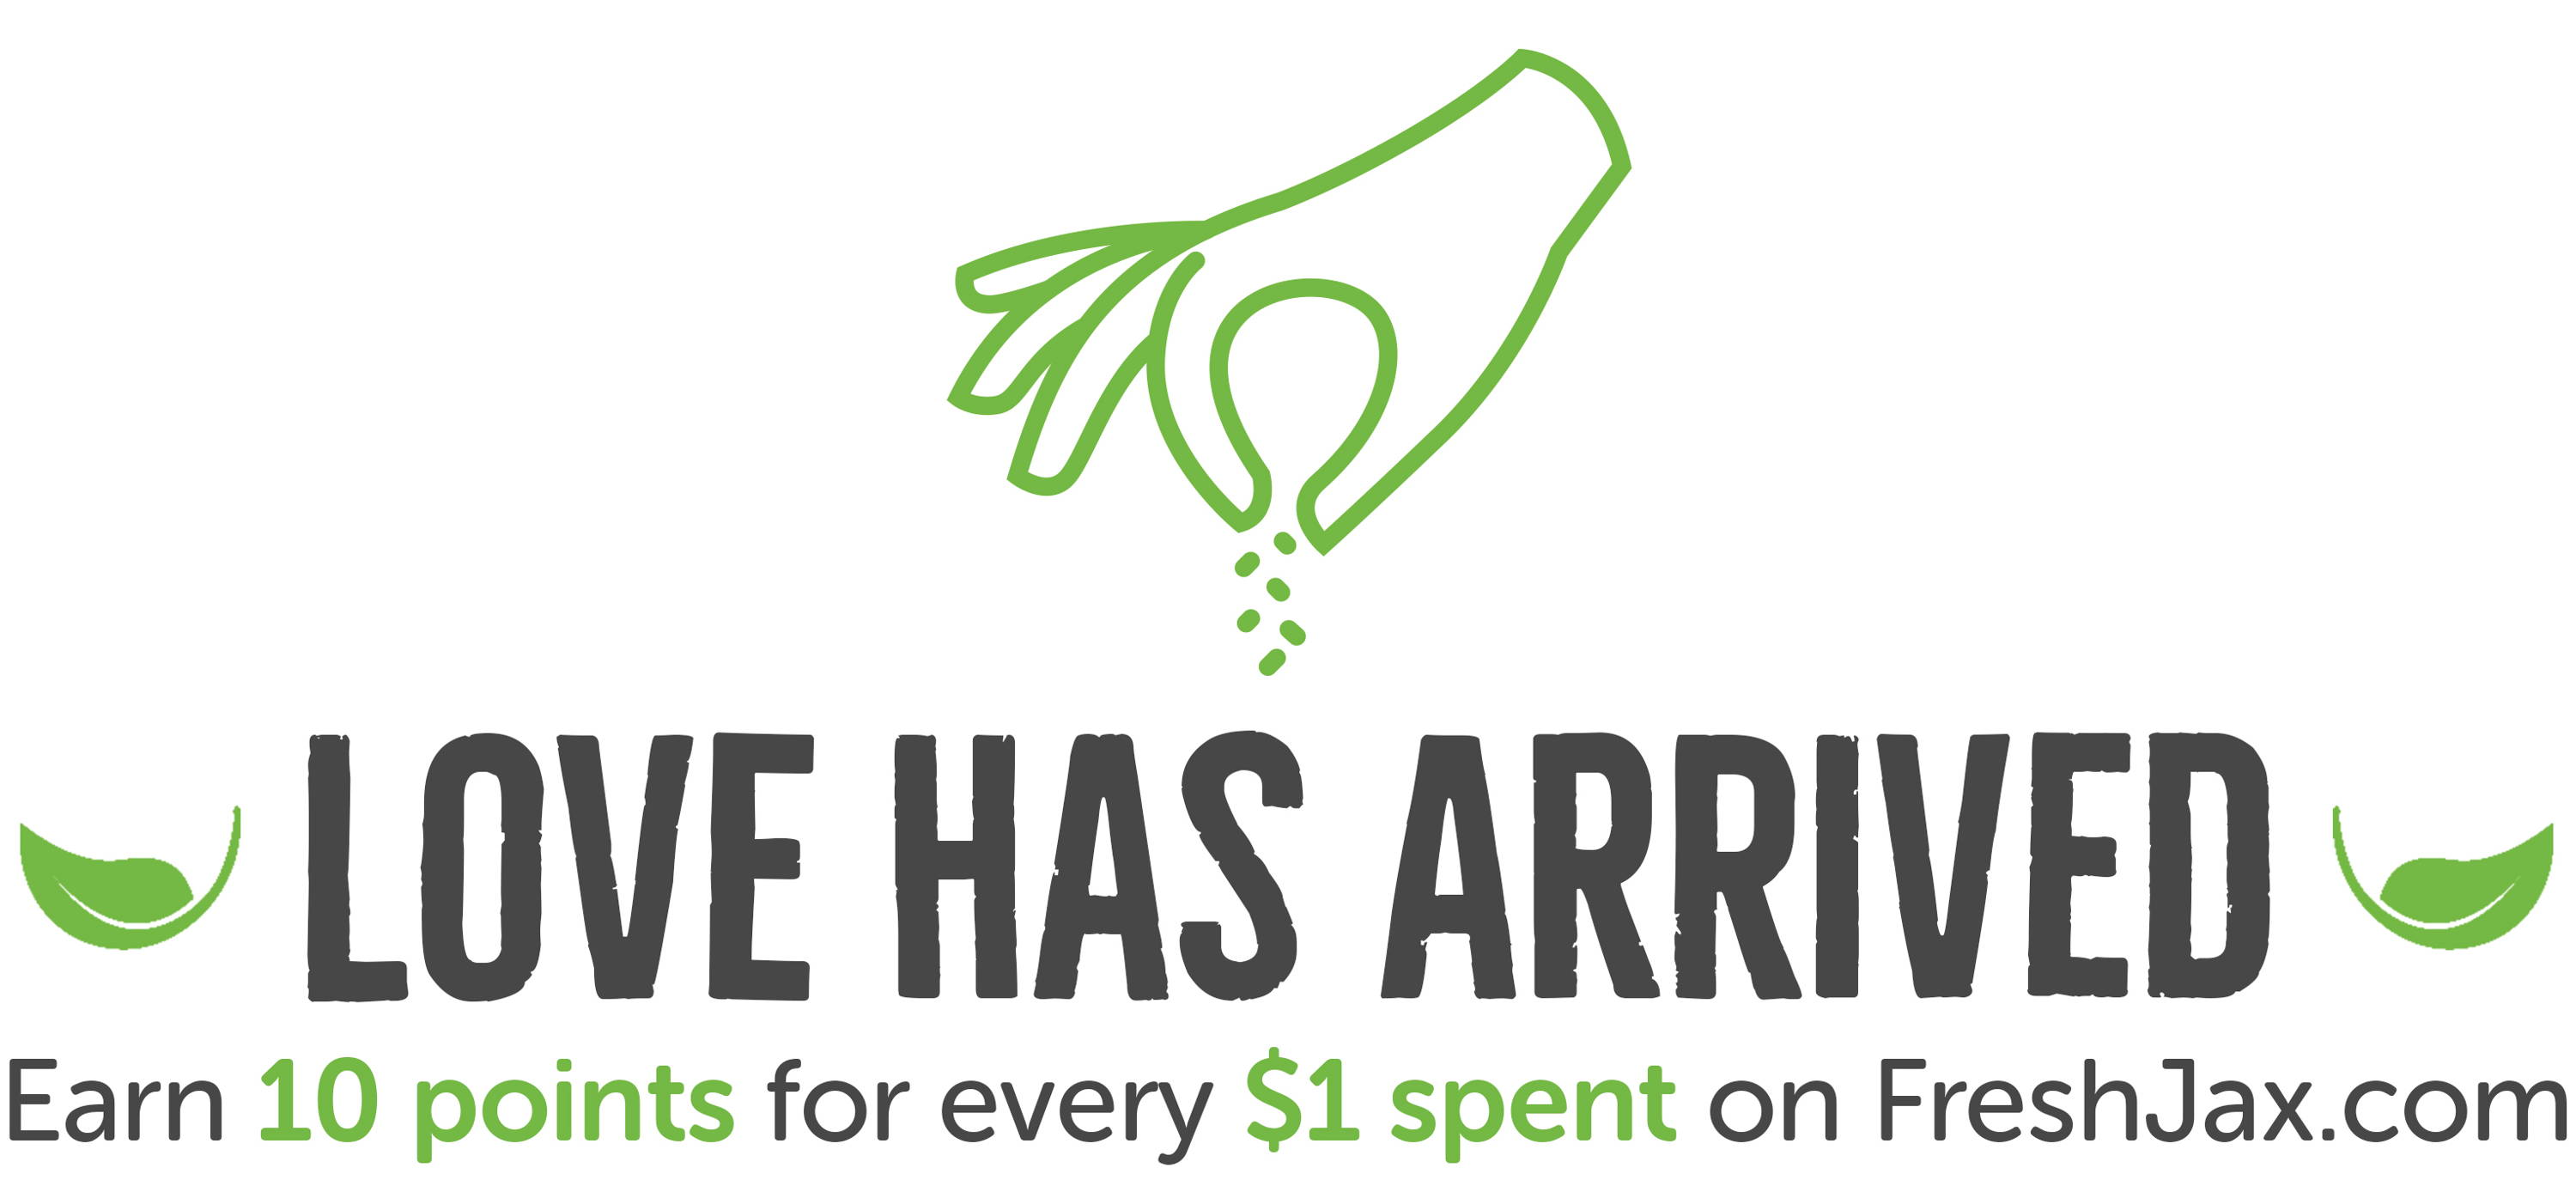 Love Has Arrived. Earn 10 points for every $1 spend on FreshJax.com